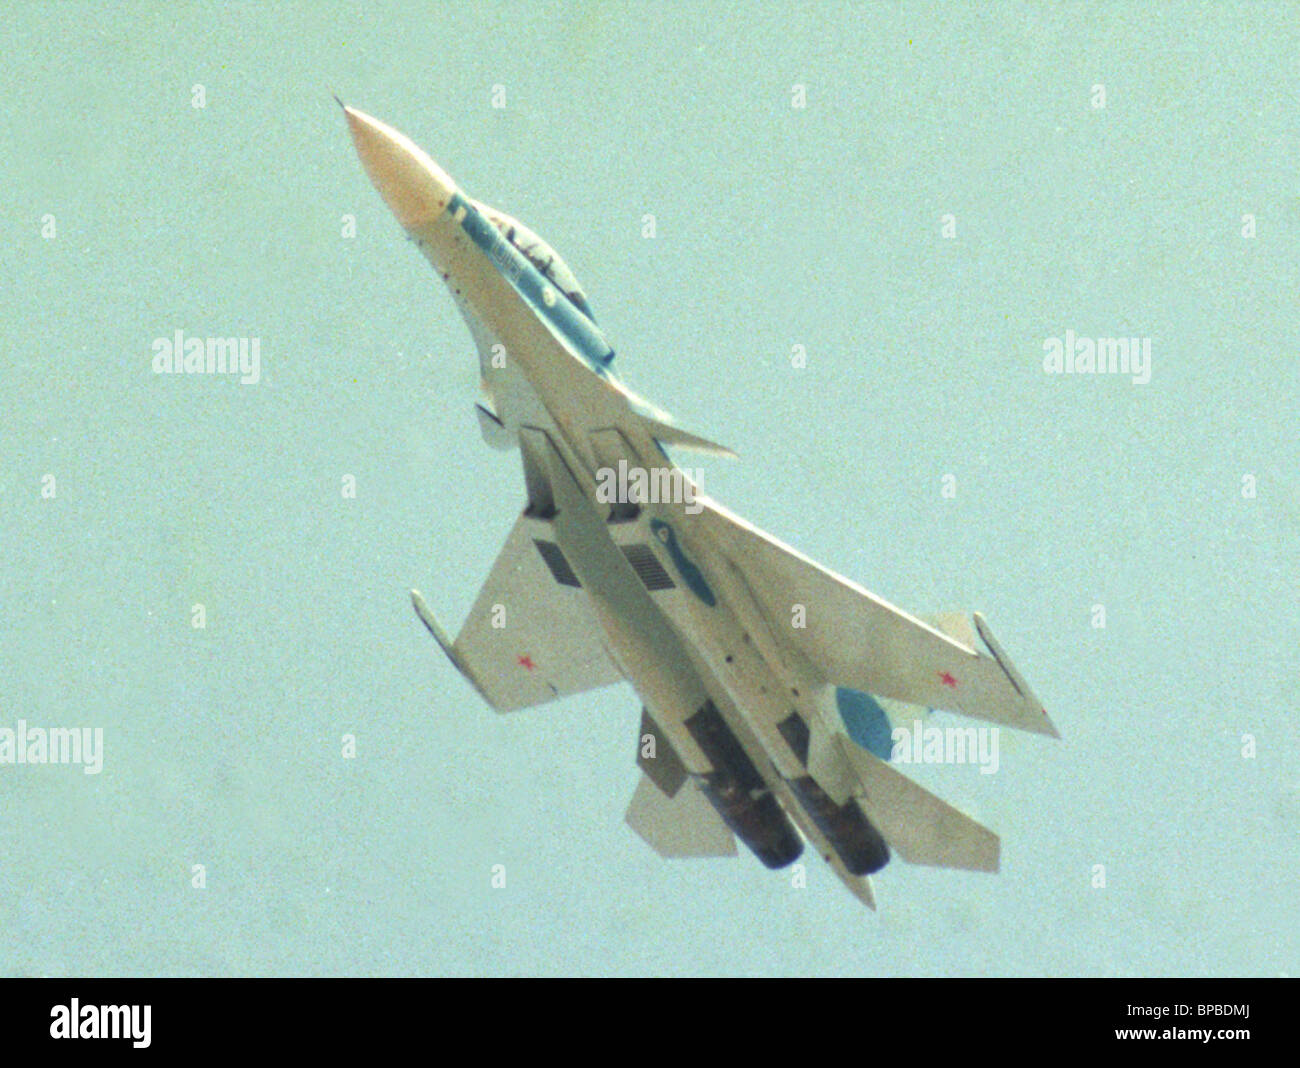 the newest multi-functional SU-30MK fighter - Stock Image